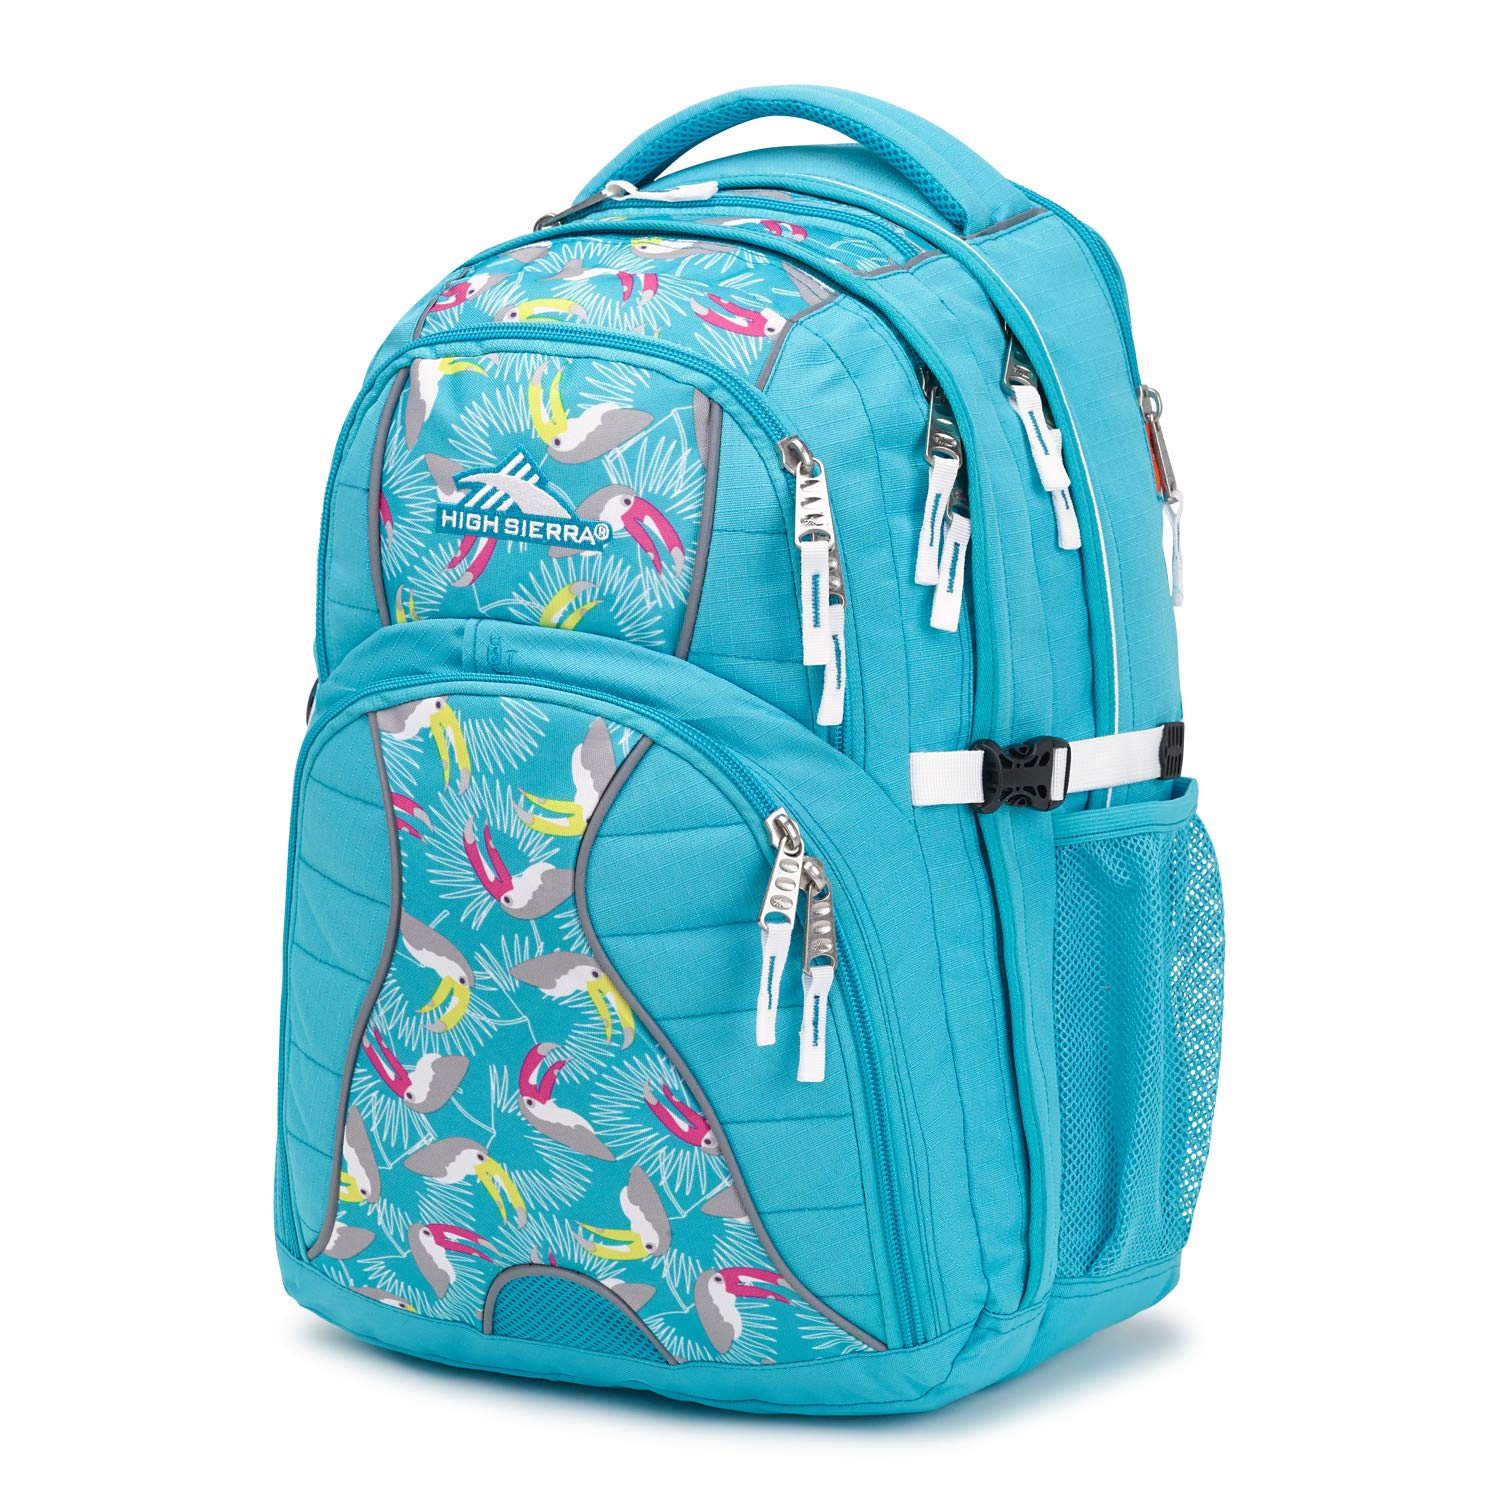 High Sierra Swerve Laptop Backpack, 17-inch Laptop Backpack for High School or College (Tropic Teal/Toucan/White) by High Sierra